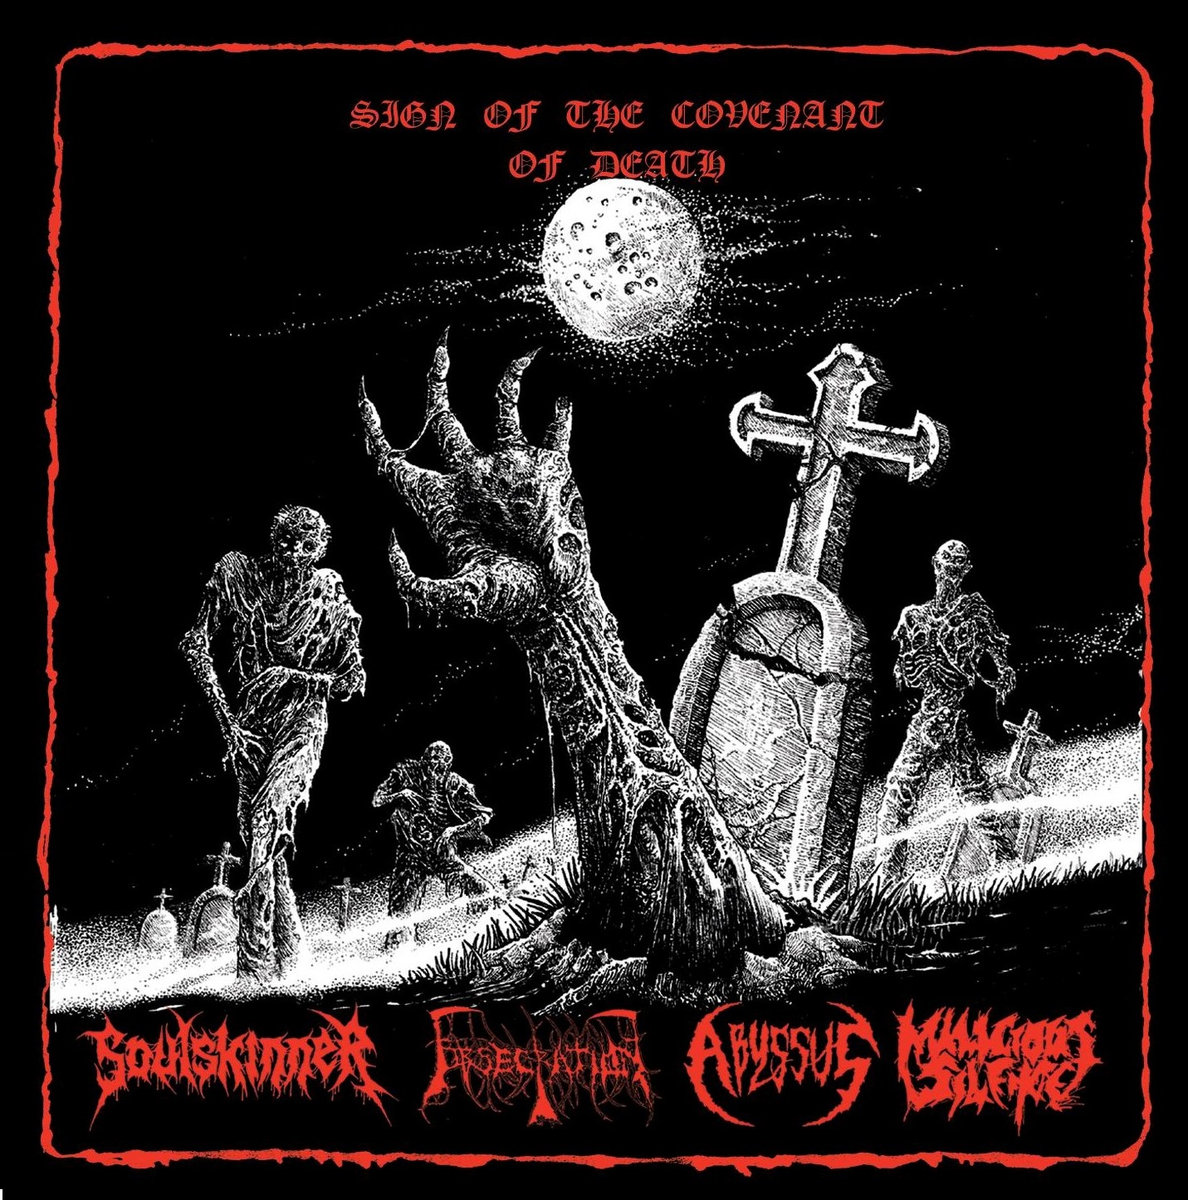 V/A – Sign Of The Covenant Of Death (CD Συλλογή)